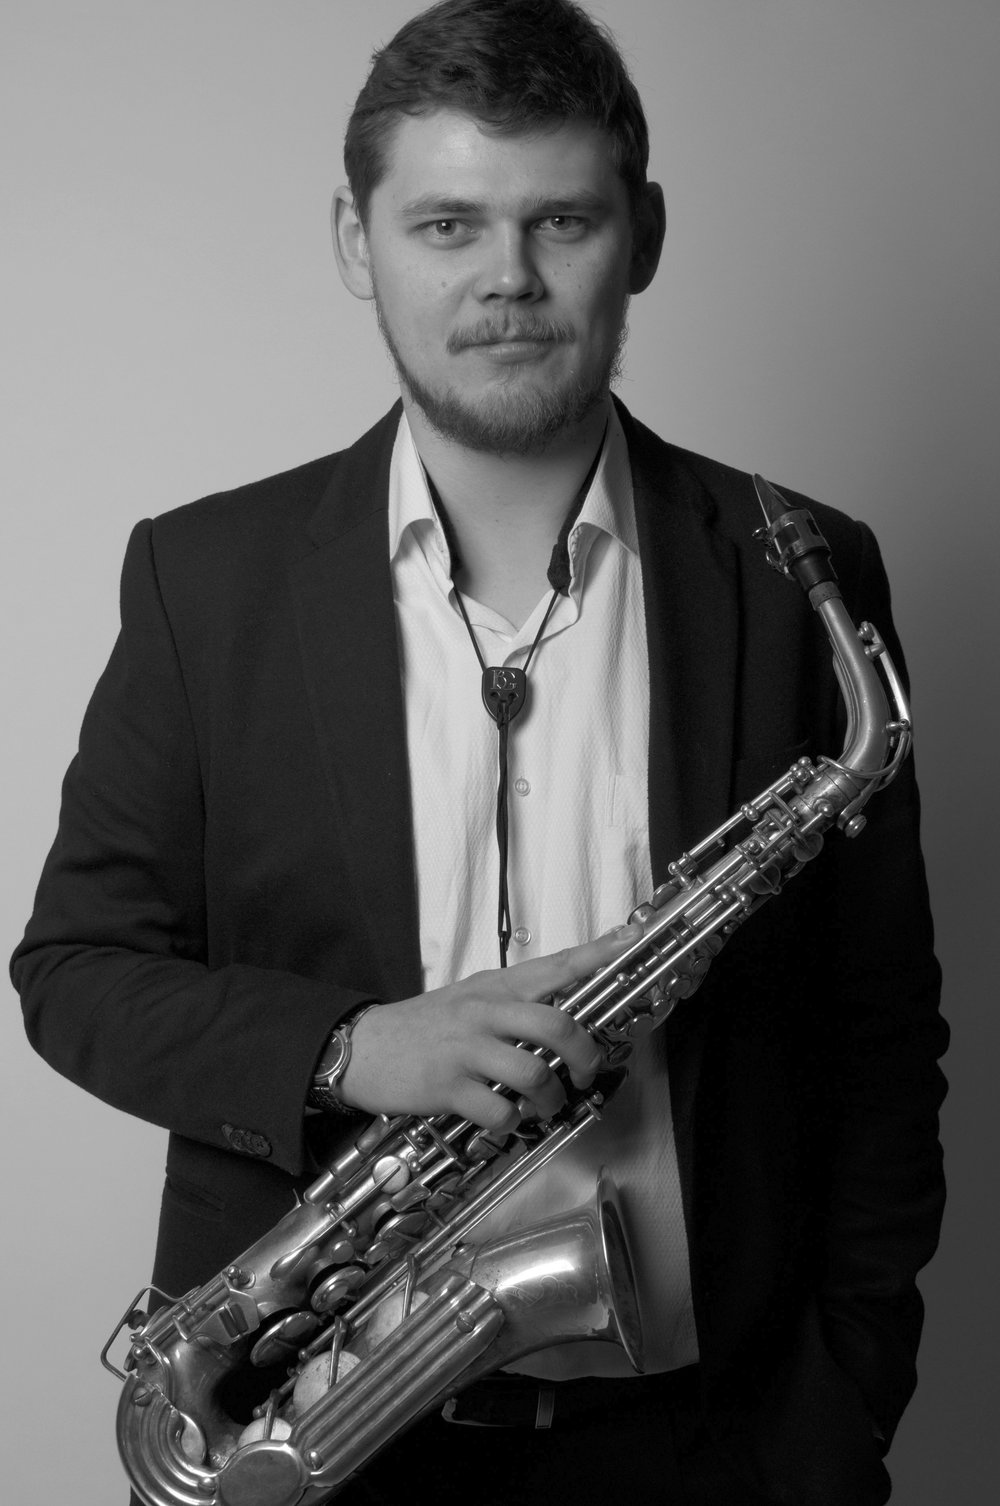 TAMAS | SAXOPHONE, CLARINET & FLUTE - Tamás is a professionally trained musician with emphasis on teaching saxophone, clarinet & flute. He is capable of teaching both classical and jazz repertoire to students of all levels and ages. In his home country of Hungary, Tamás performs at some of the most recognised venues and jazz festivals with high profile musicians.He has obtained Bachelor's Degree in Jazz Music at Trento Conservatory and Master's Degree at the Conservatory of Music in Milan, Italy.